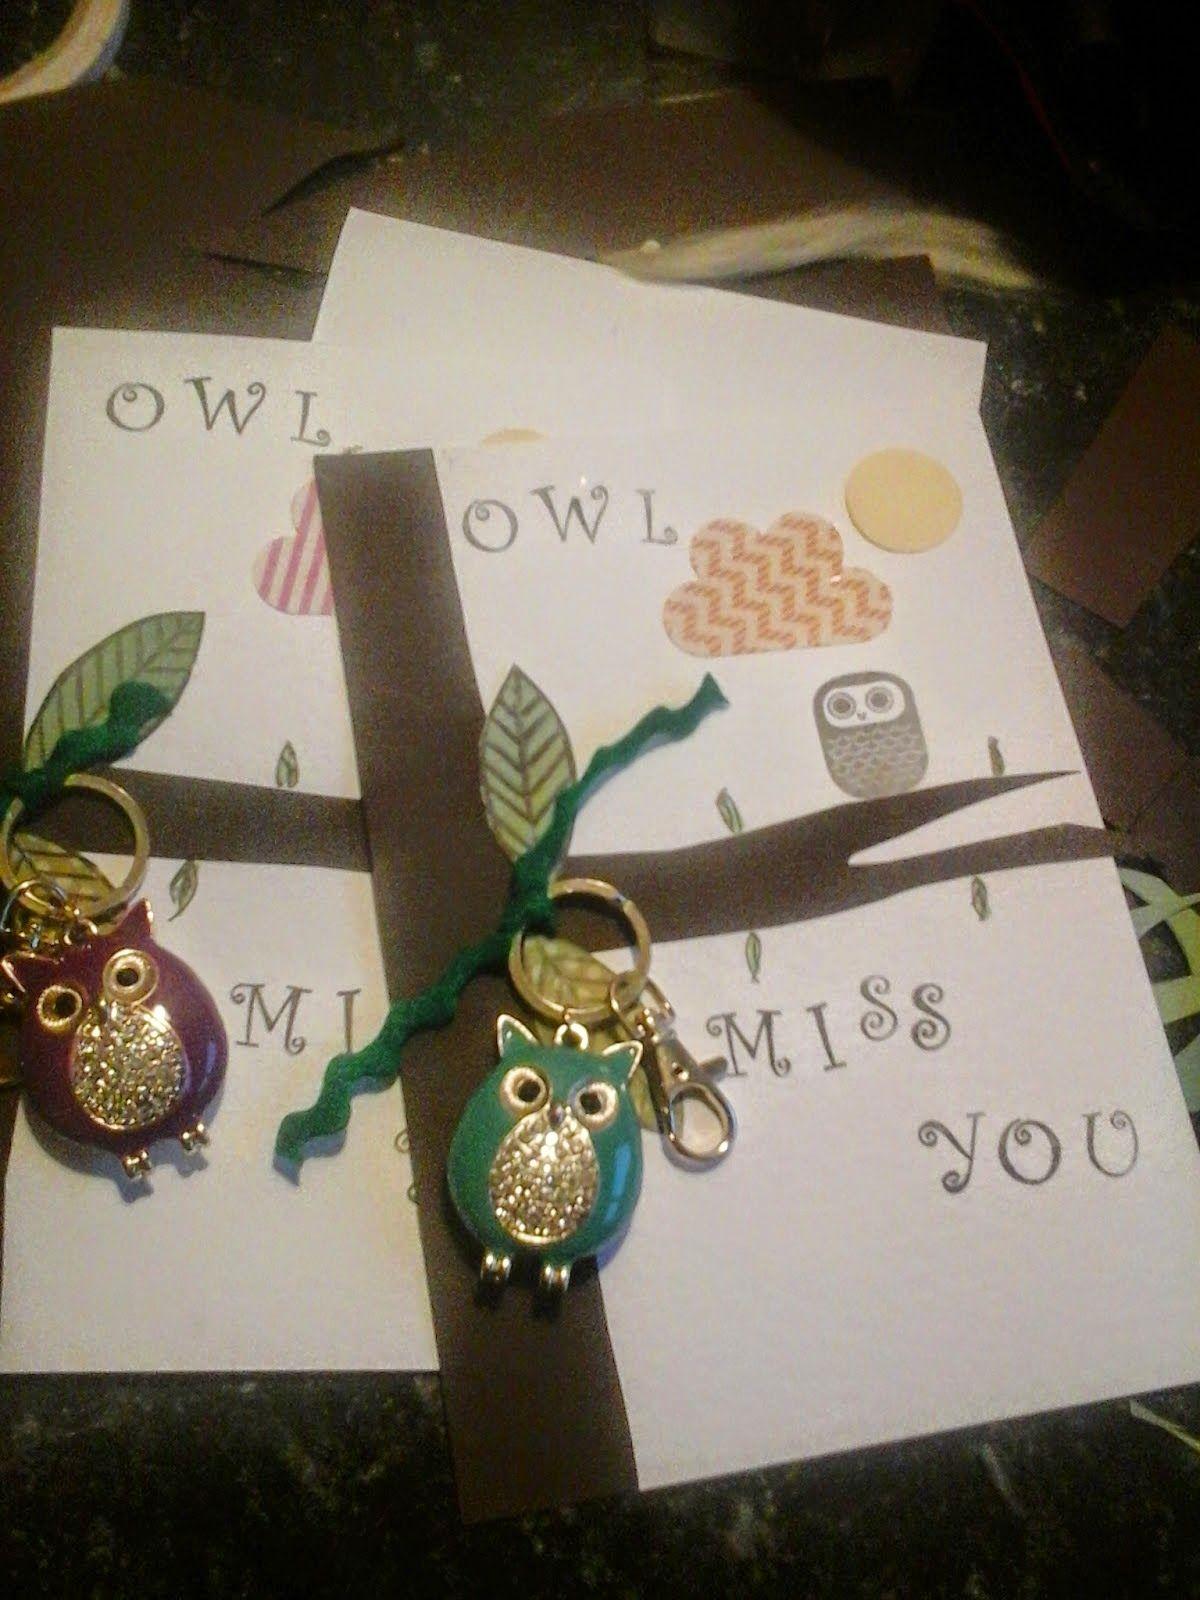 Teachers gifts using owl keyrings.